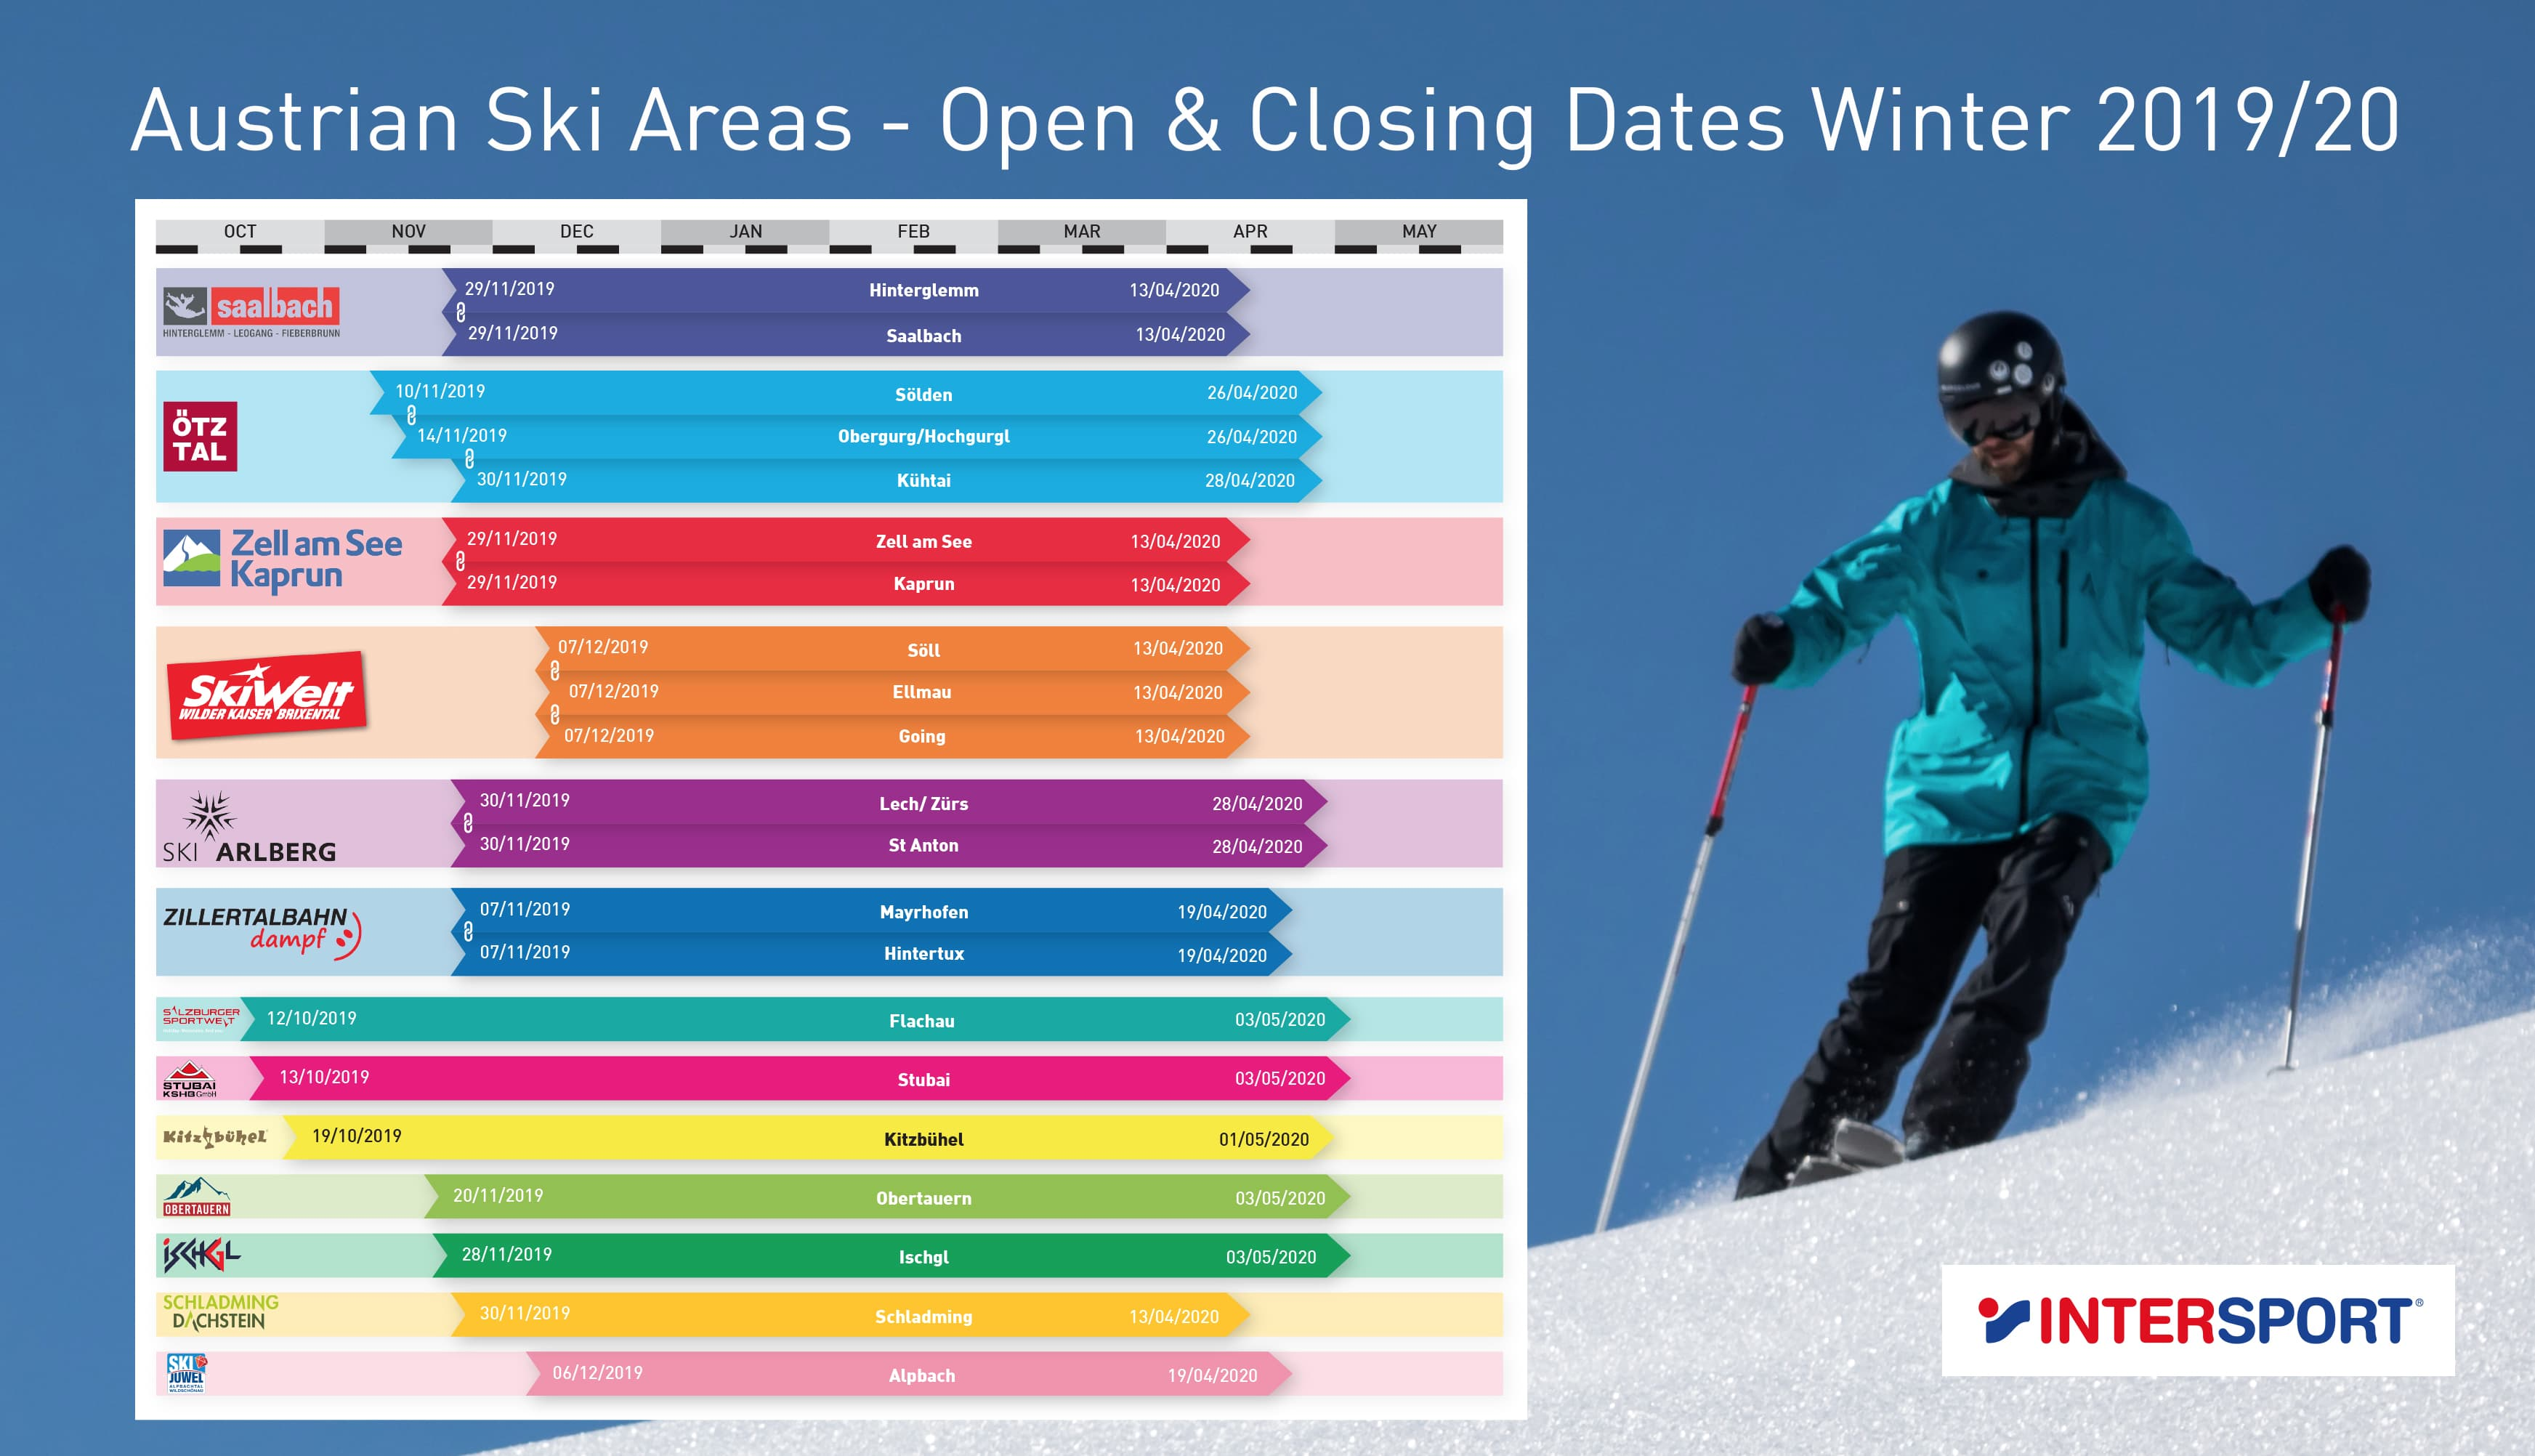 Austrian resorts opening times